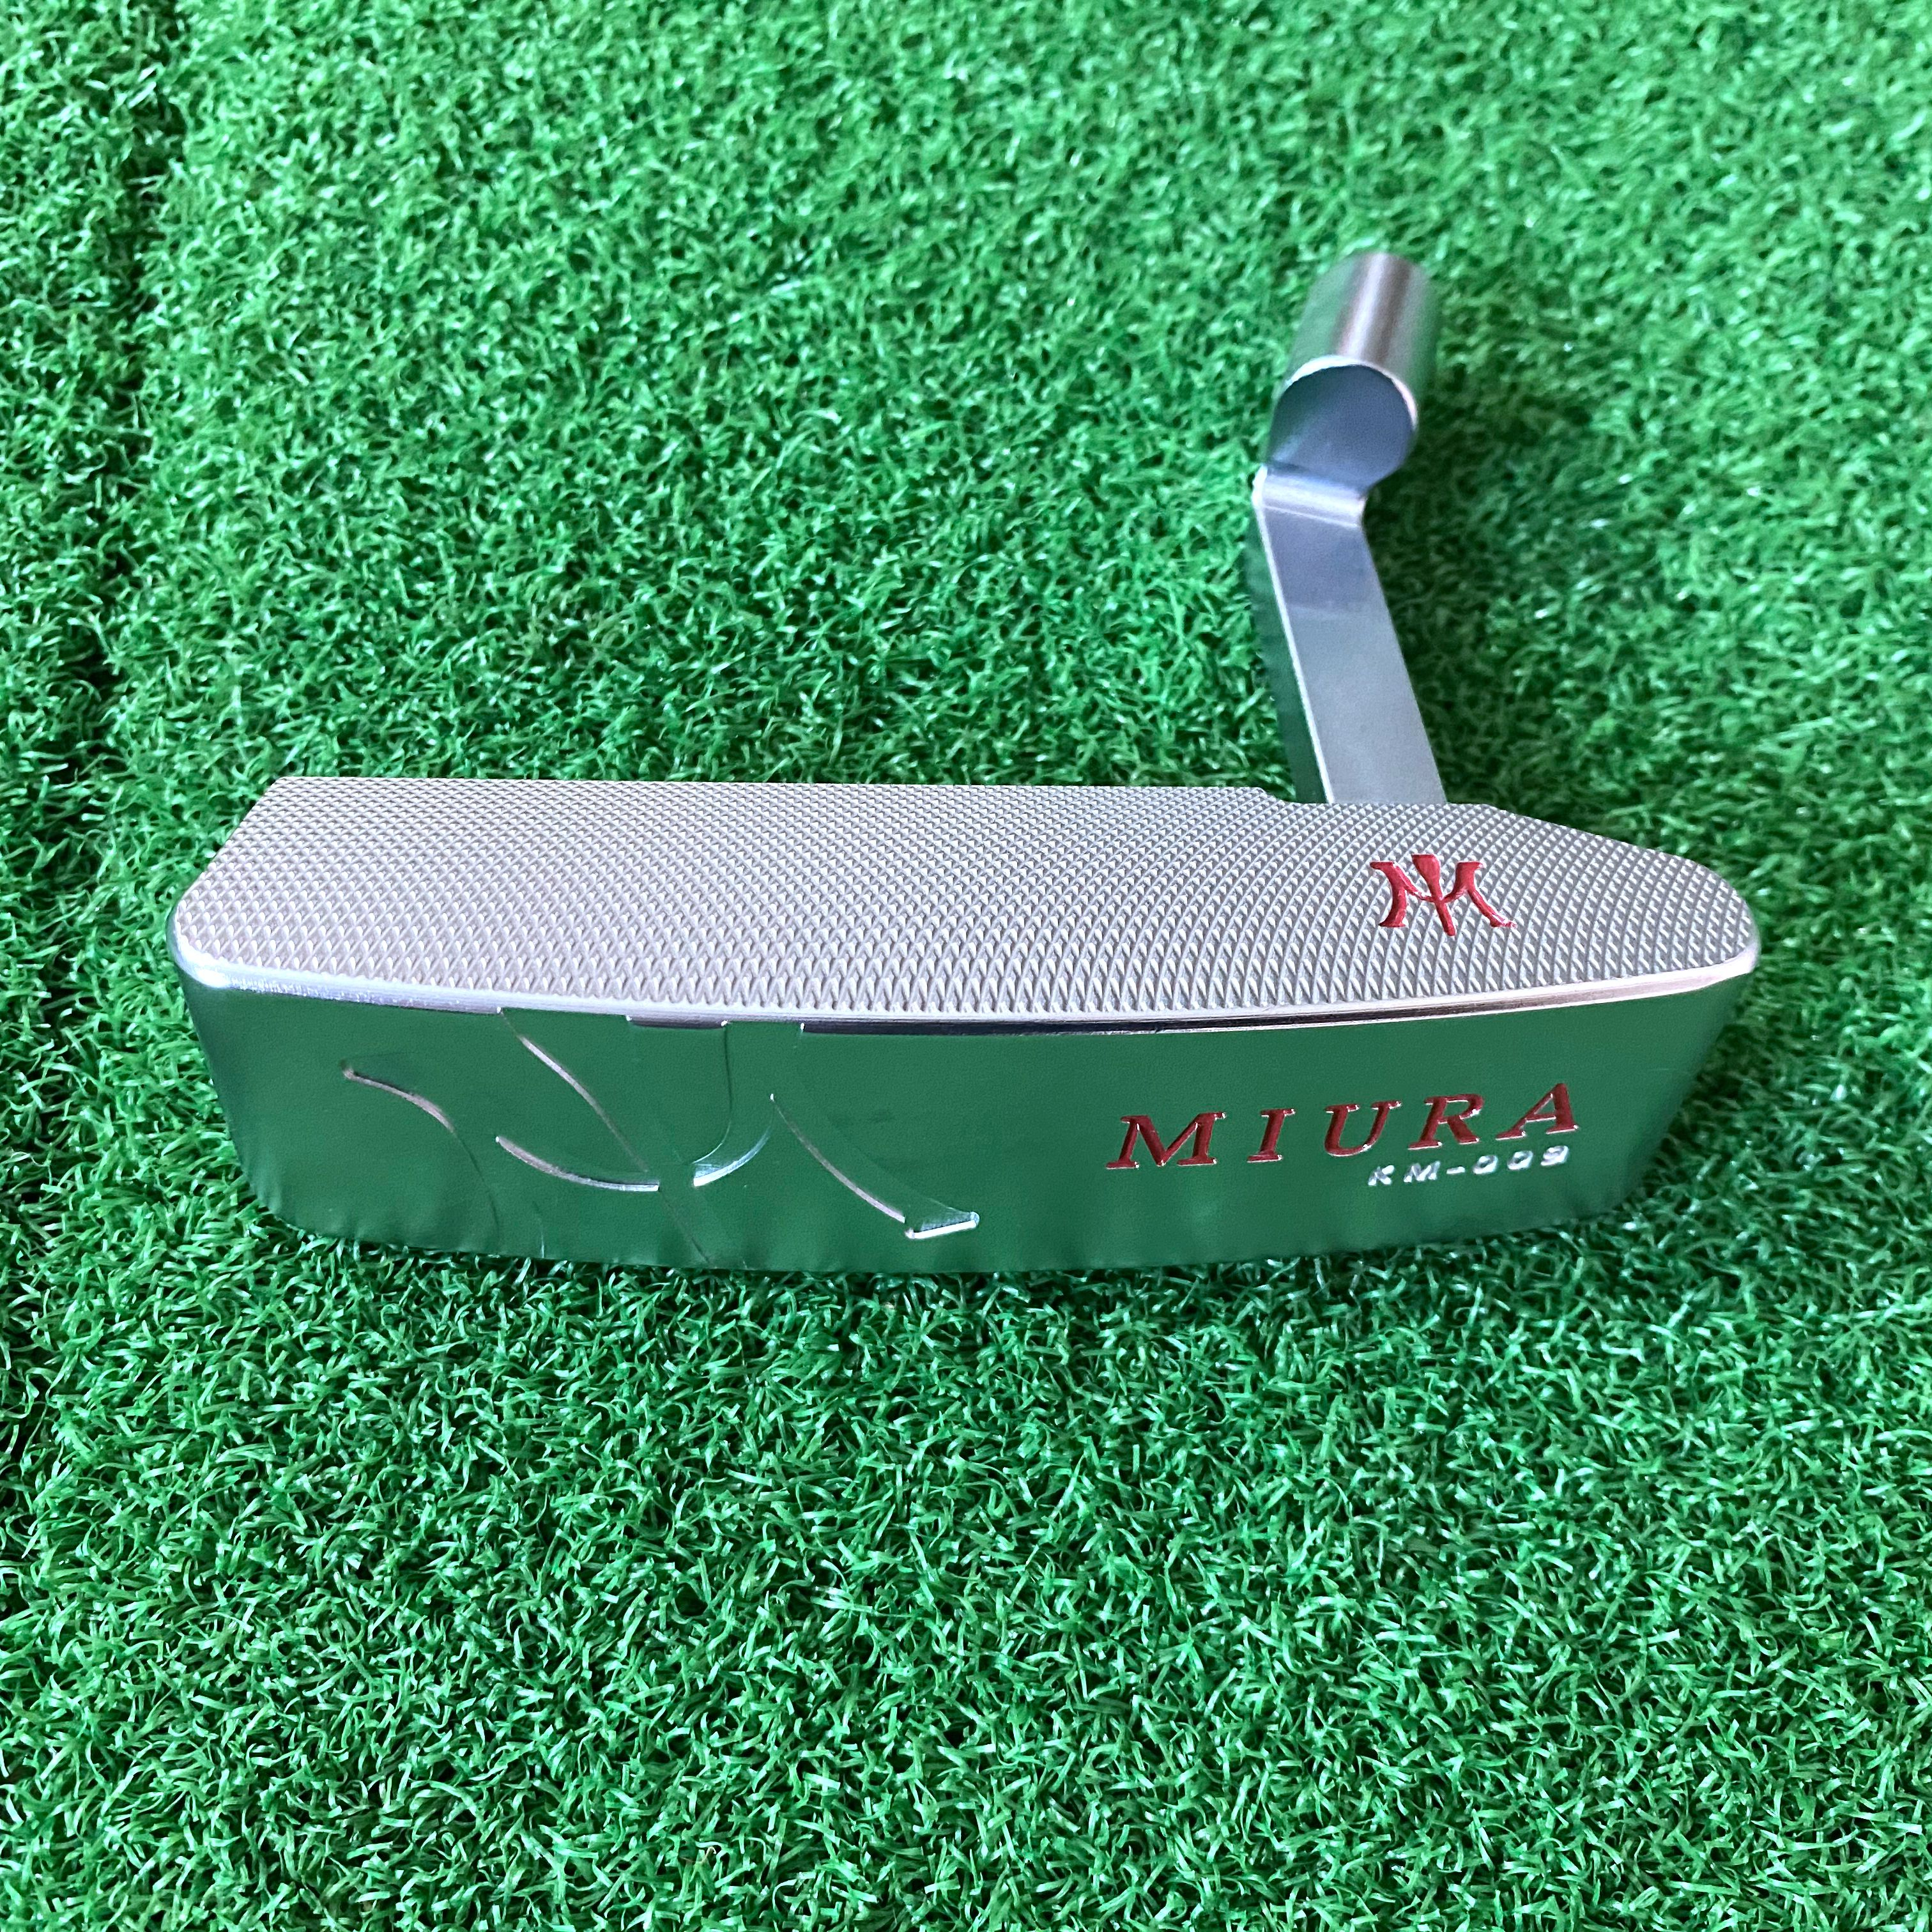 New Golf Clubs Putter Head Only No Shaft Miura Free Shipping Soft Iron Forged